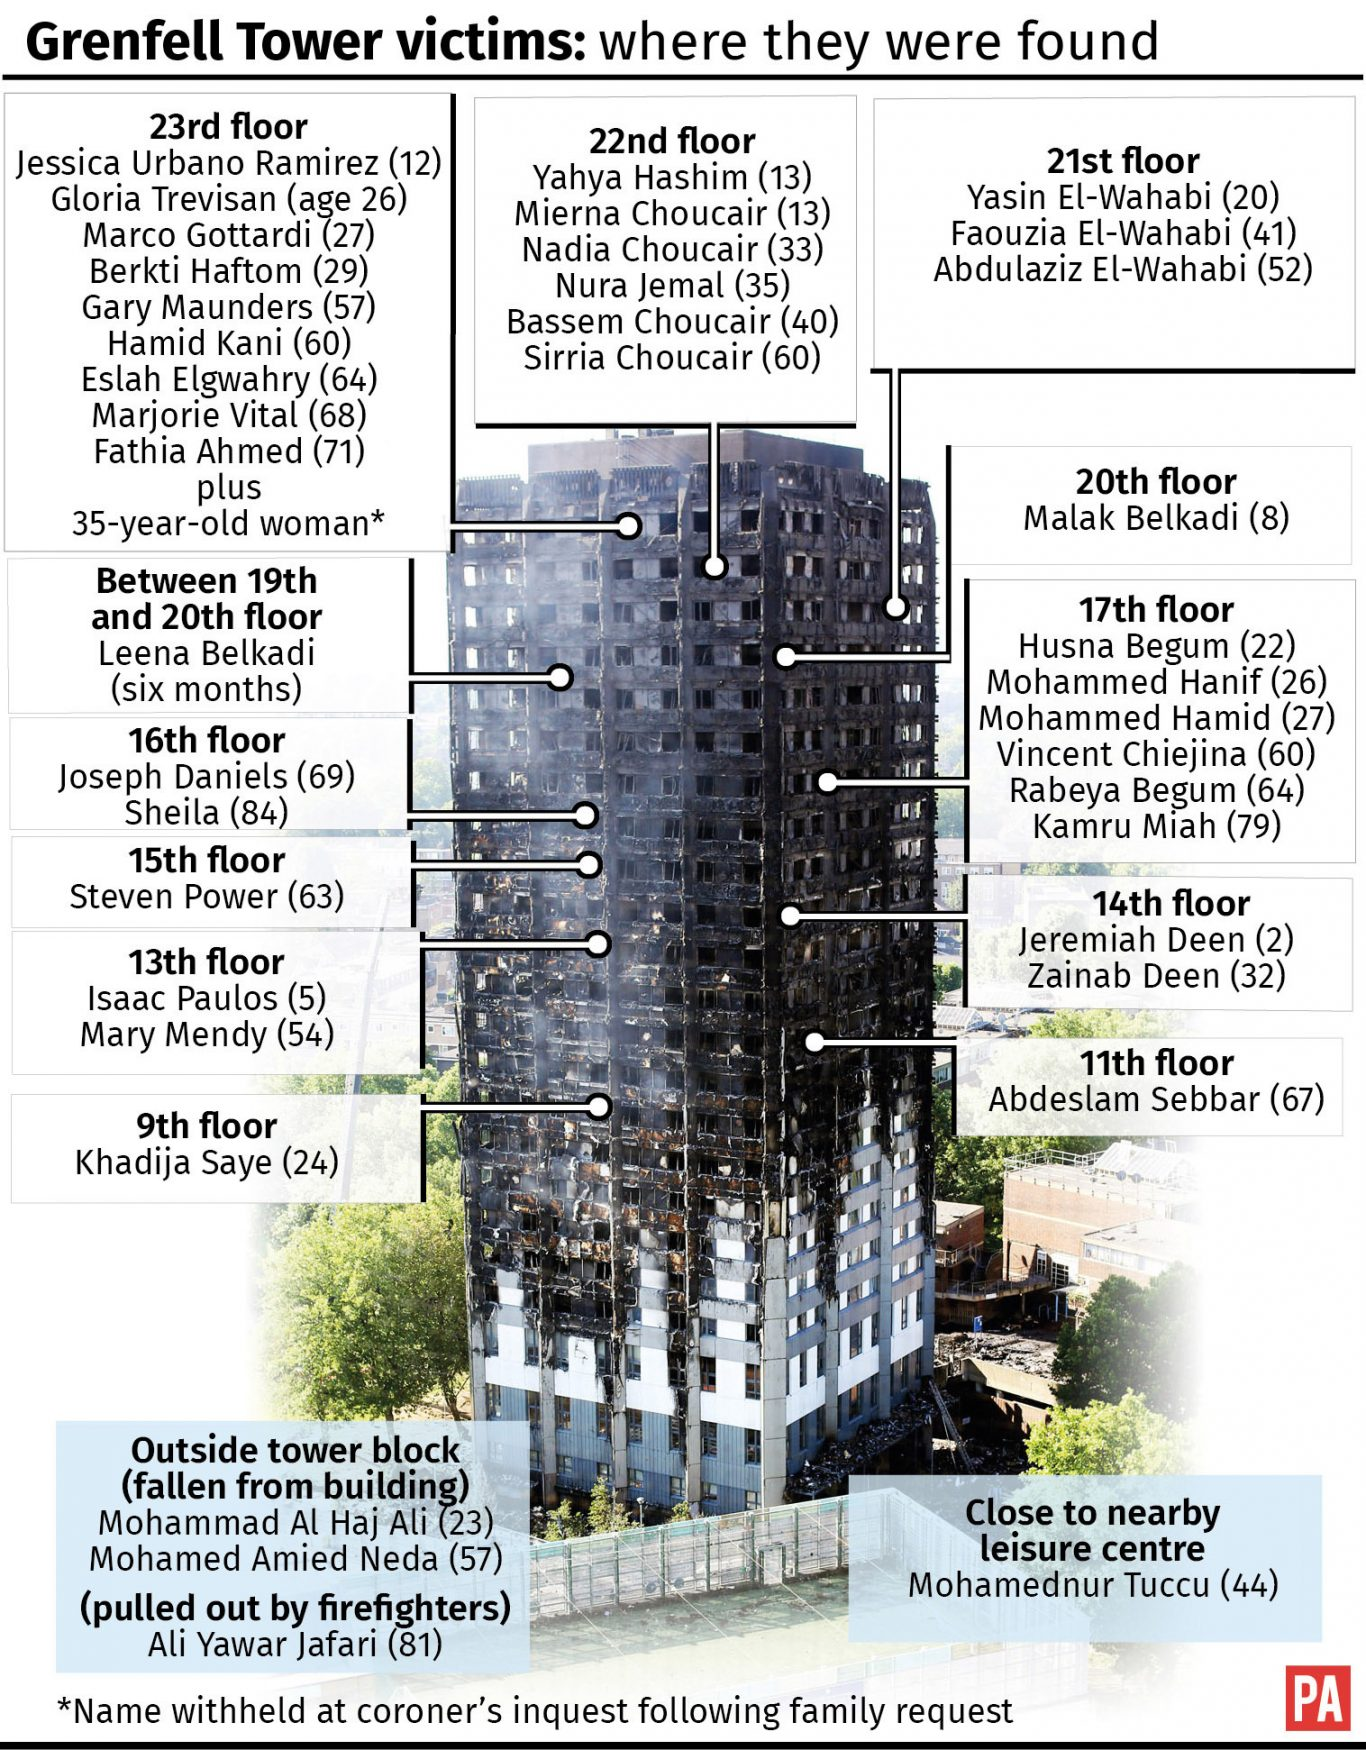 Grenfell Tower victims